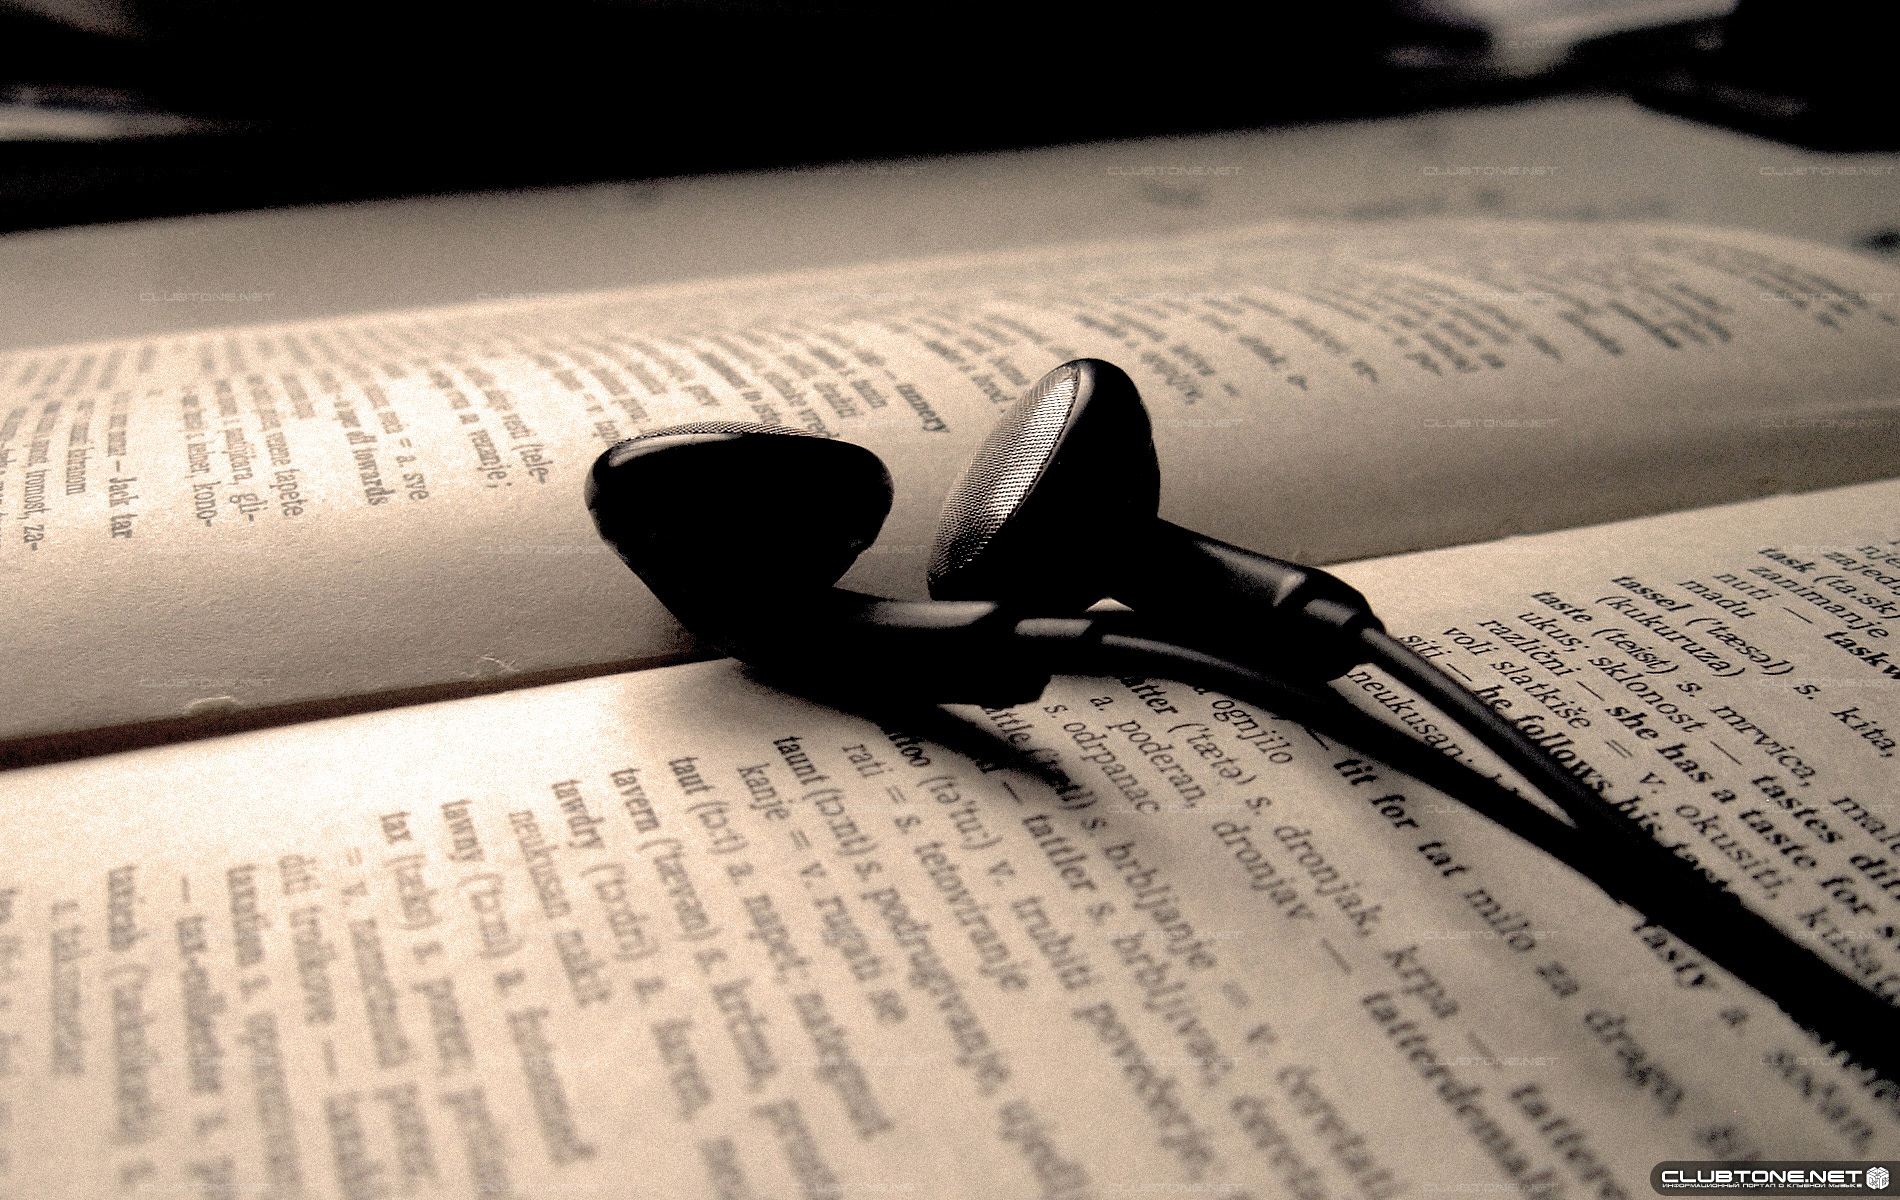 headphones on the book